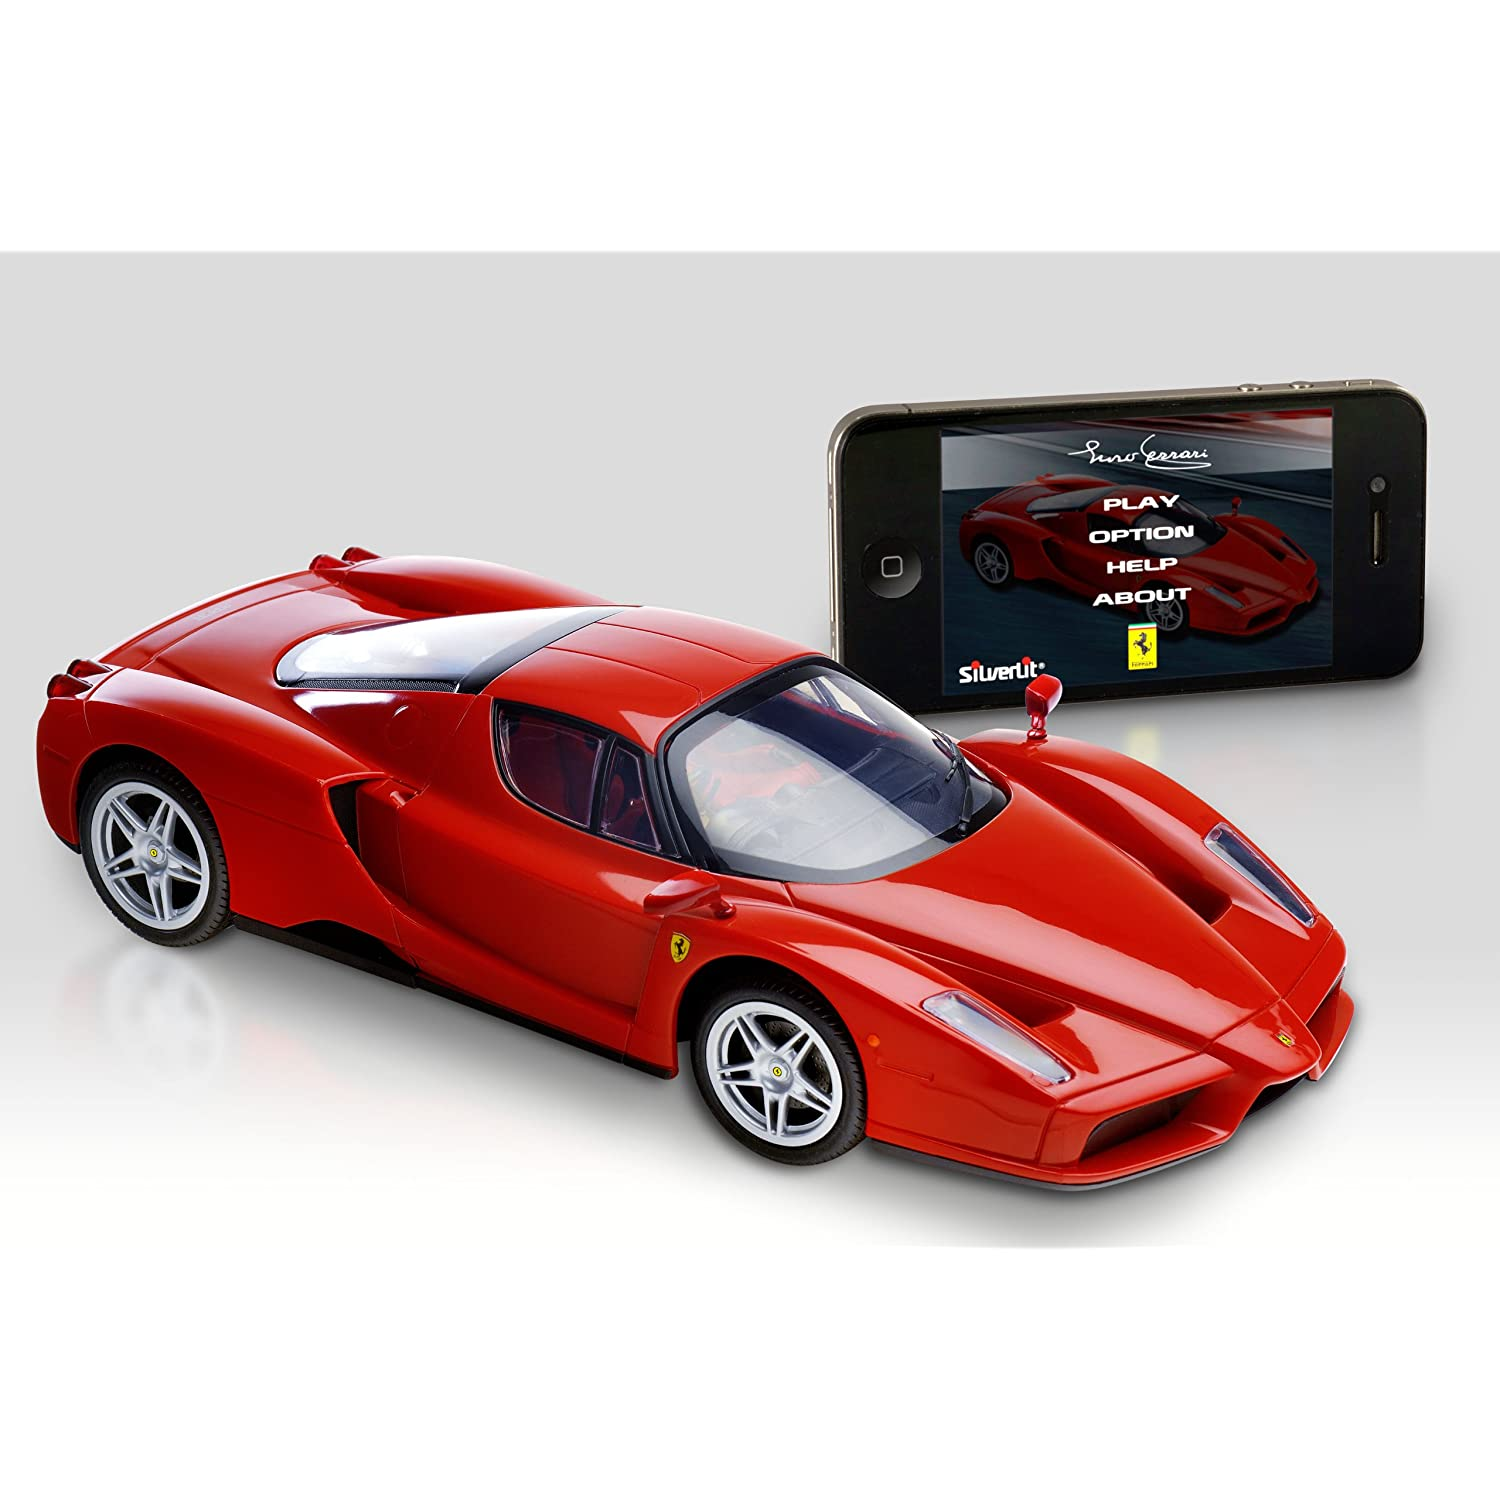 iPhone Controlled Cars